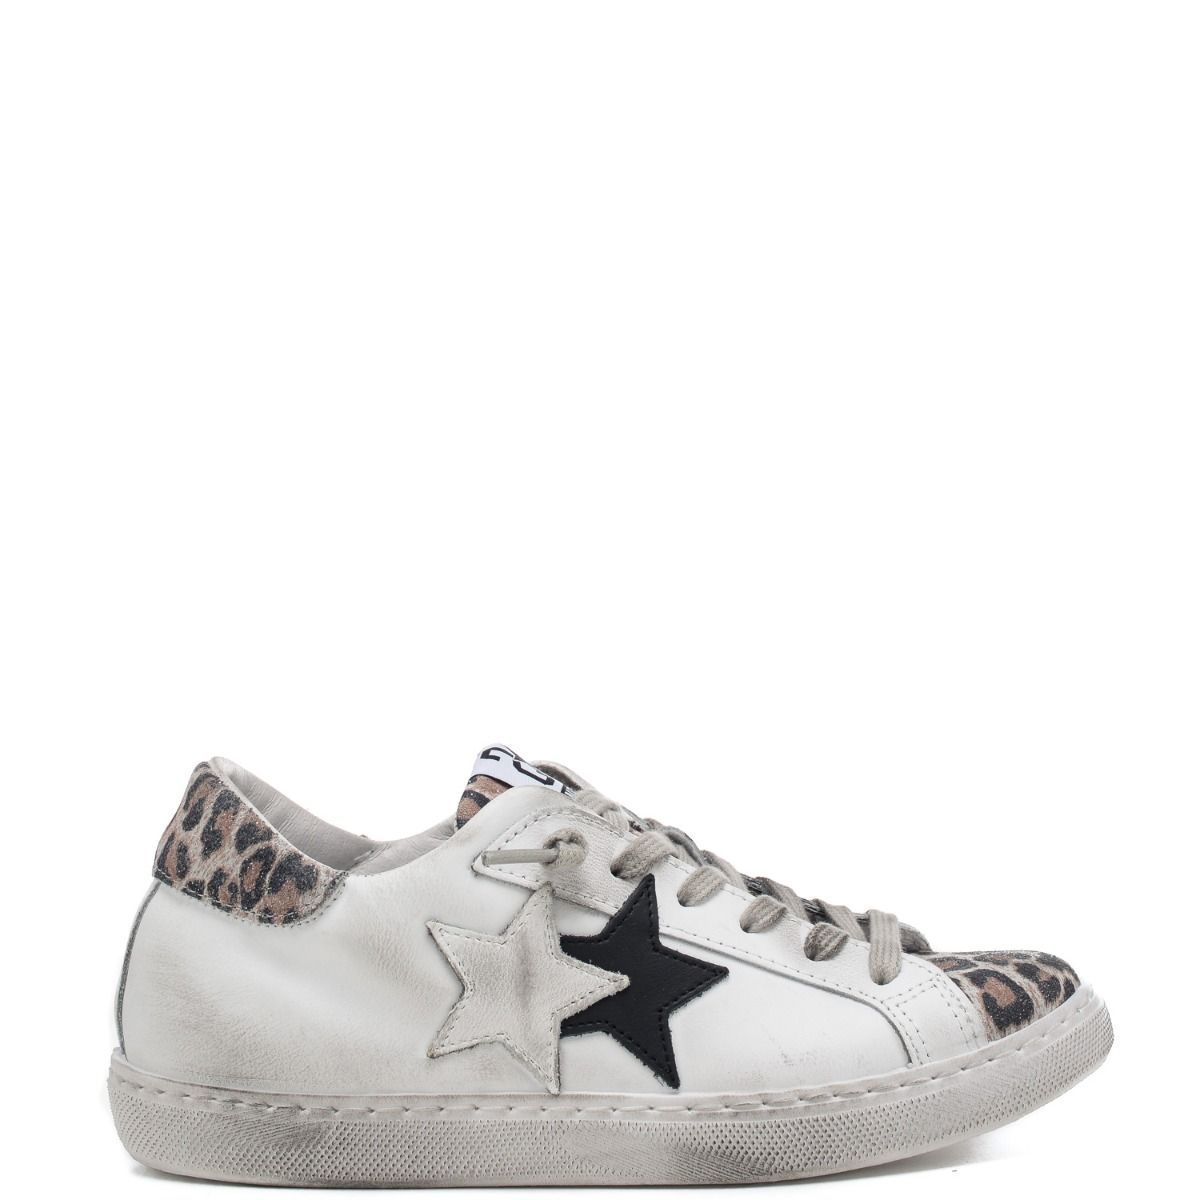 2 Star sneakers 2SD2807